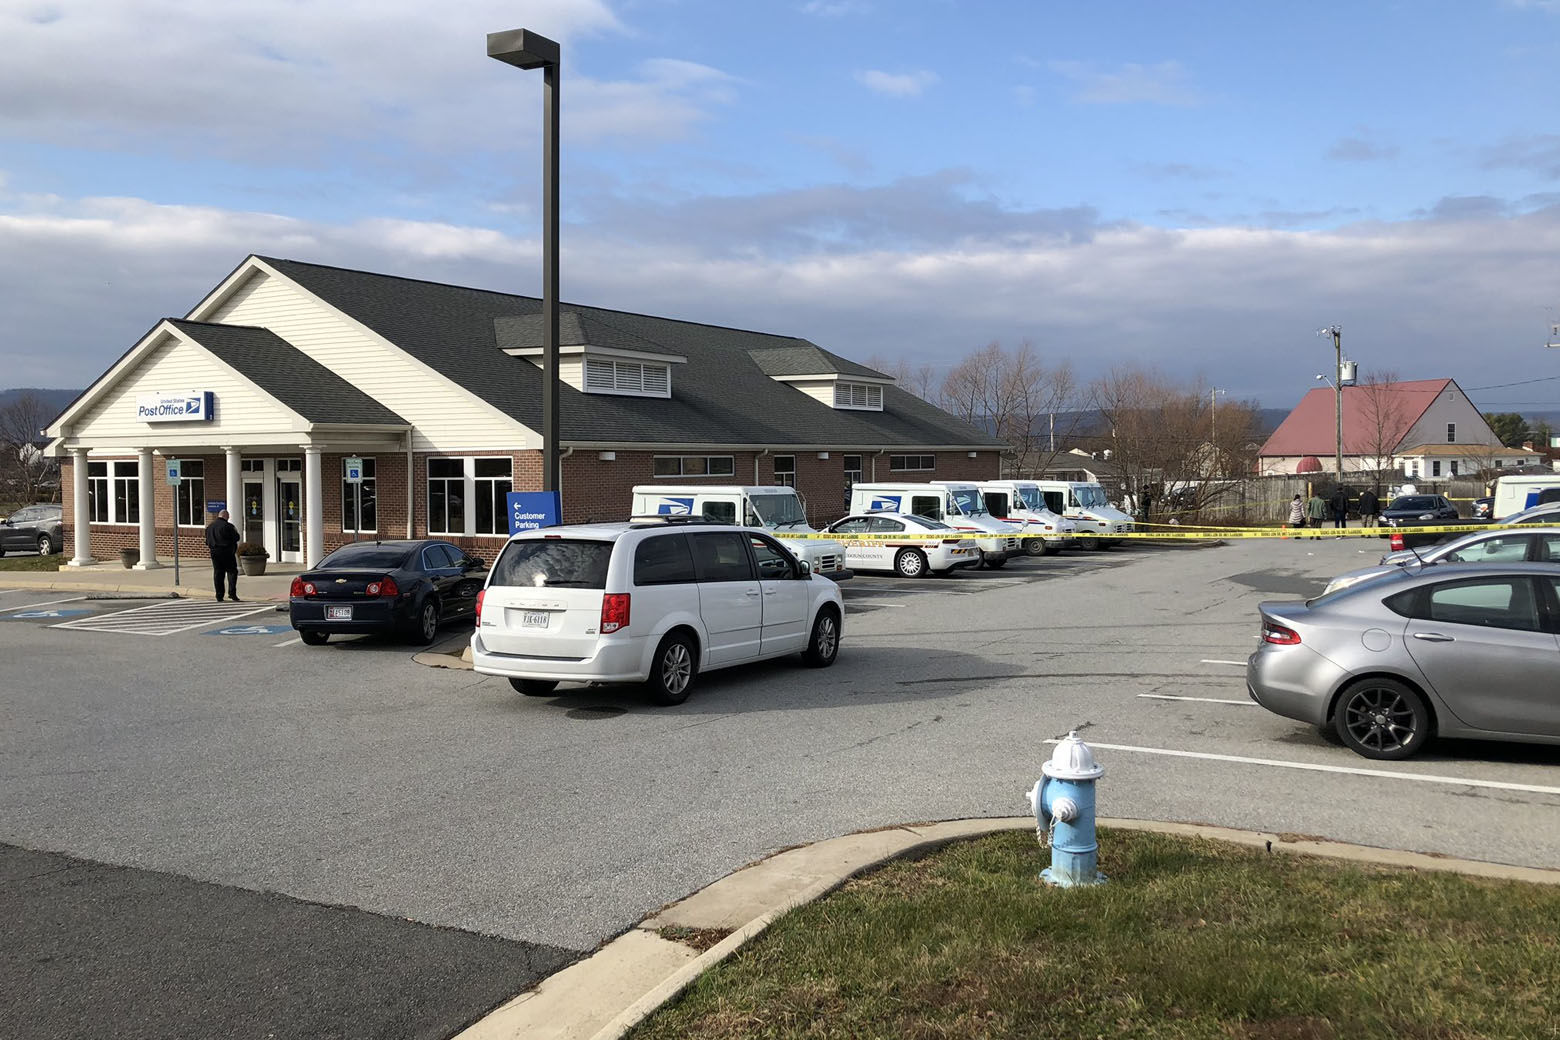 """A Postal Service special agent involved in what's described as a """"critical incident"""" shot and wounded another Postal Service employee in a post office parking lot i in Lovettsville, Virginia, Wednesday morning, federal authorities confirm to WTOP. (WTOP/Neal Augenstein)"""